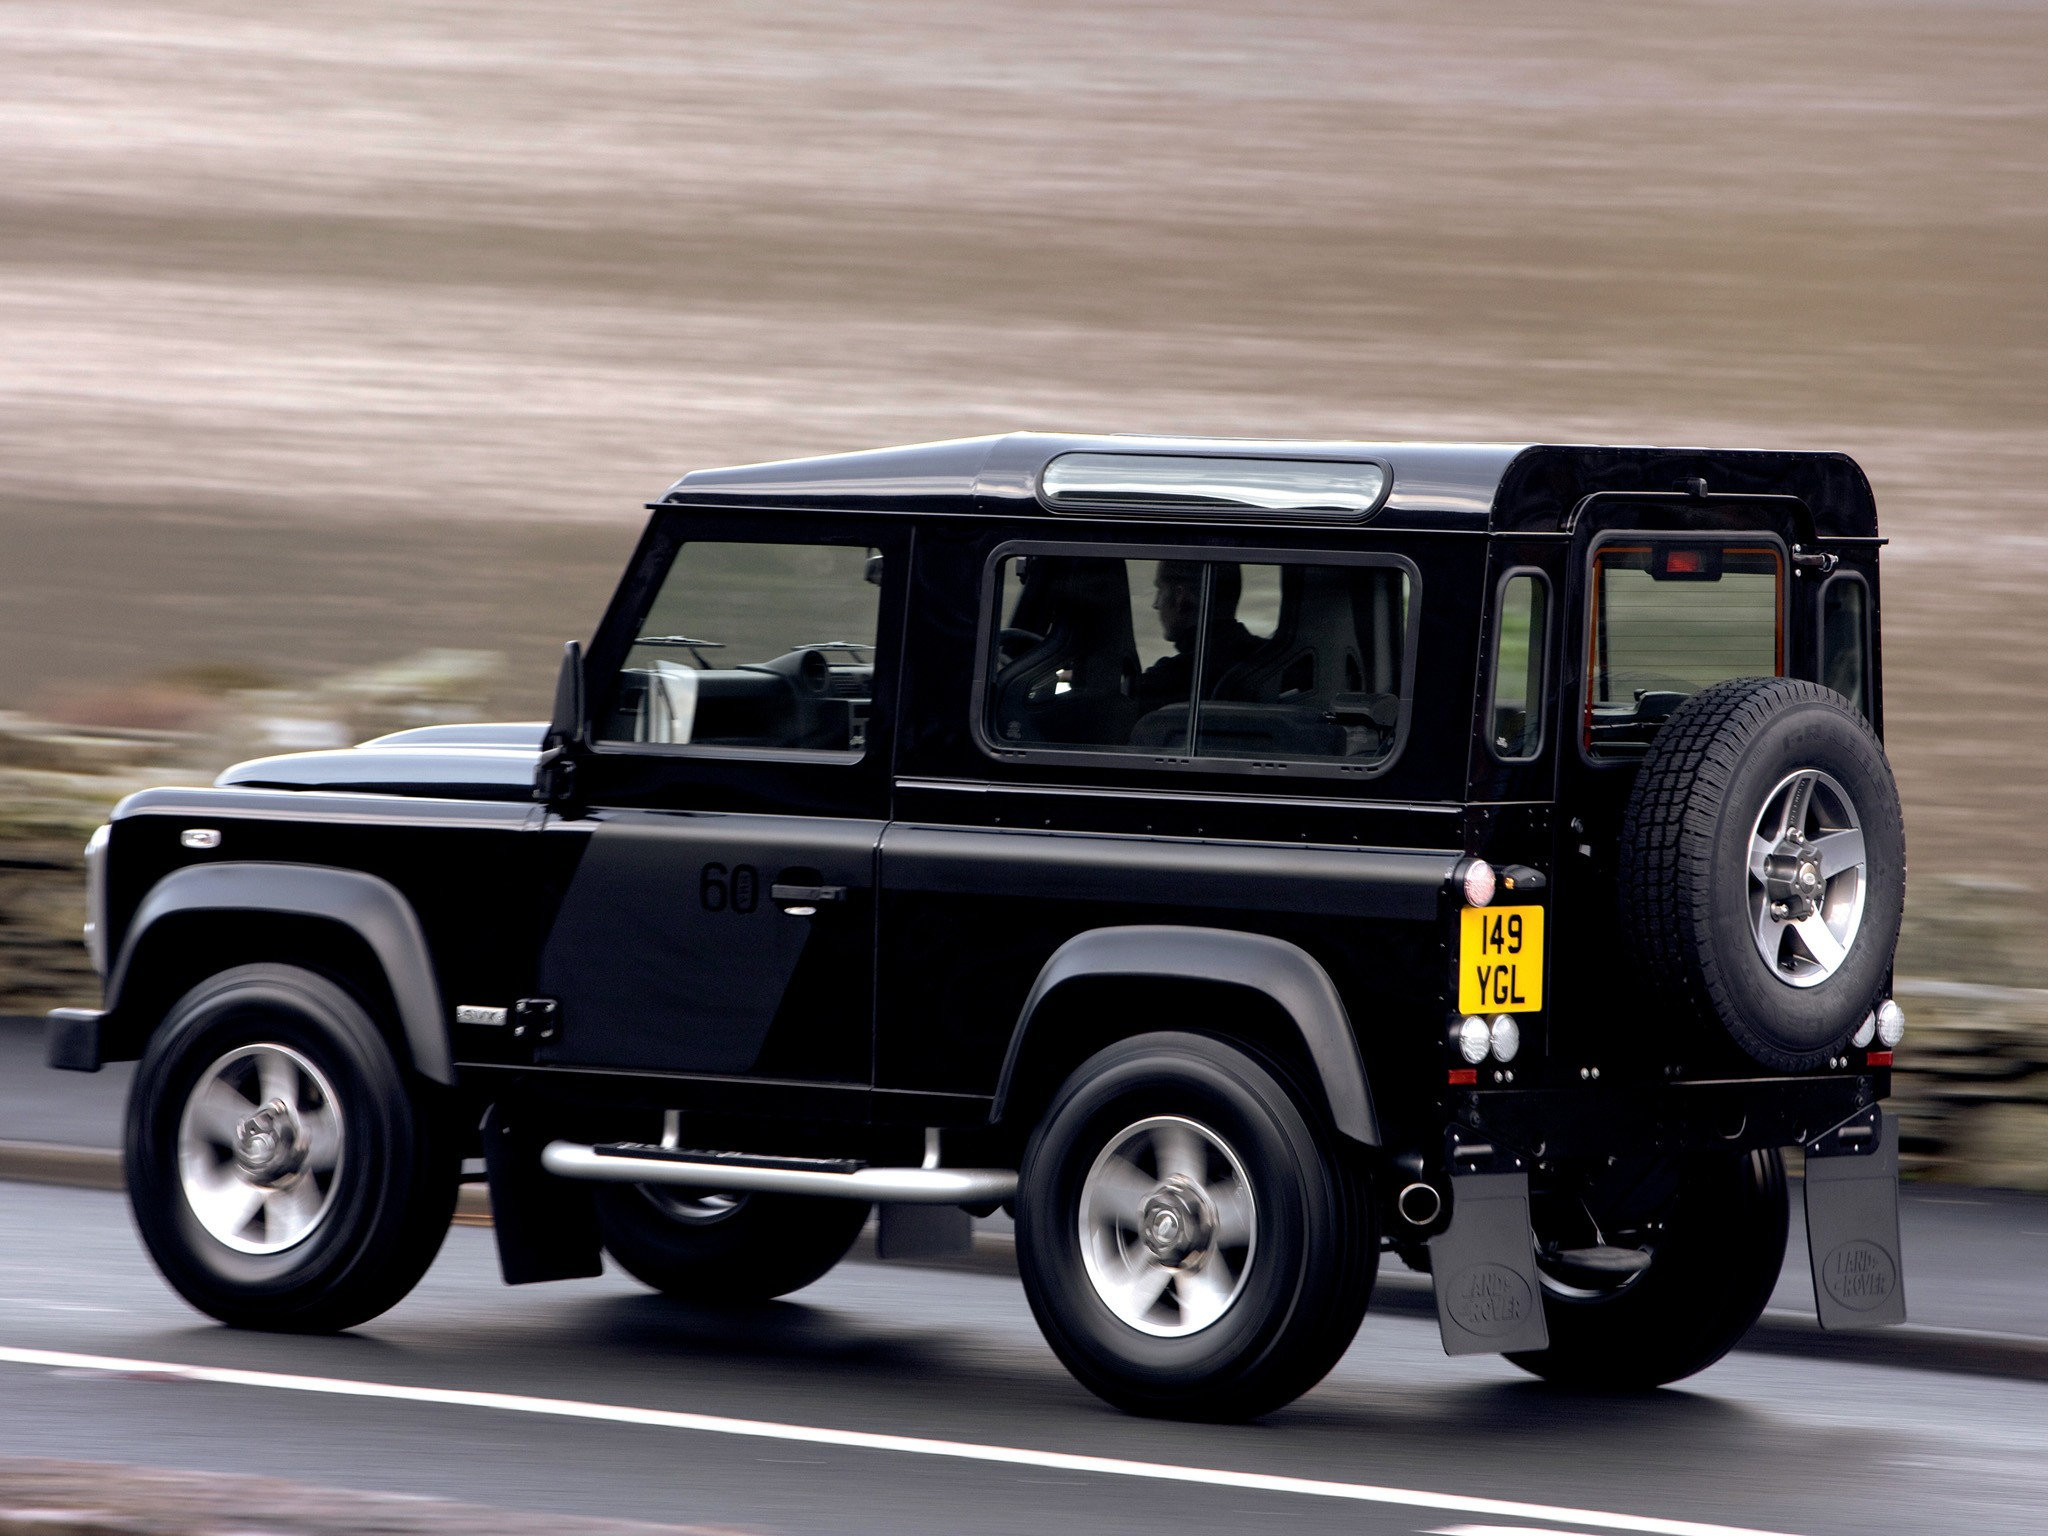 2019 land rover defender svx considered jaguar svx models also possible autoevolution. Black Bedroom Furniture Sets. Home Design Ideas